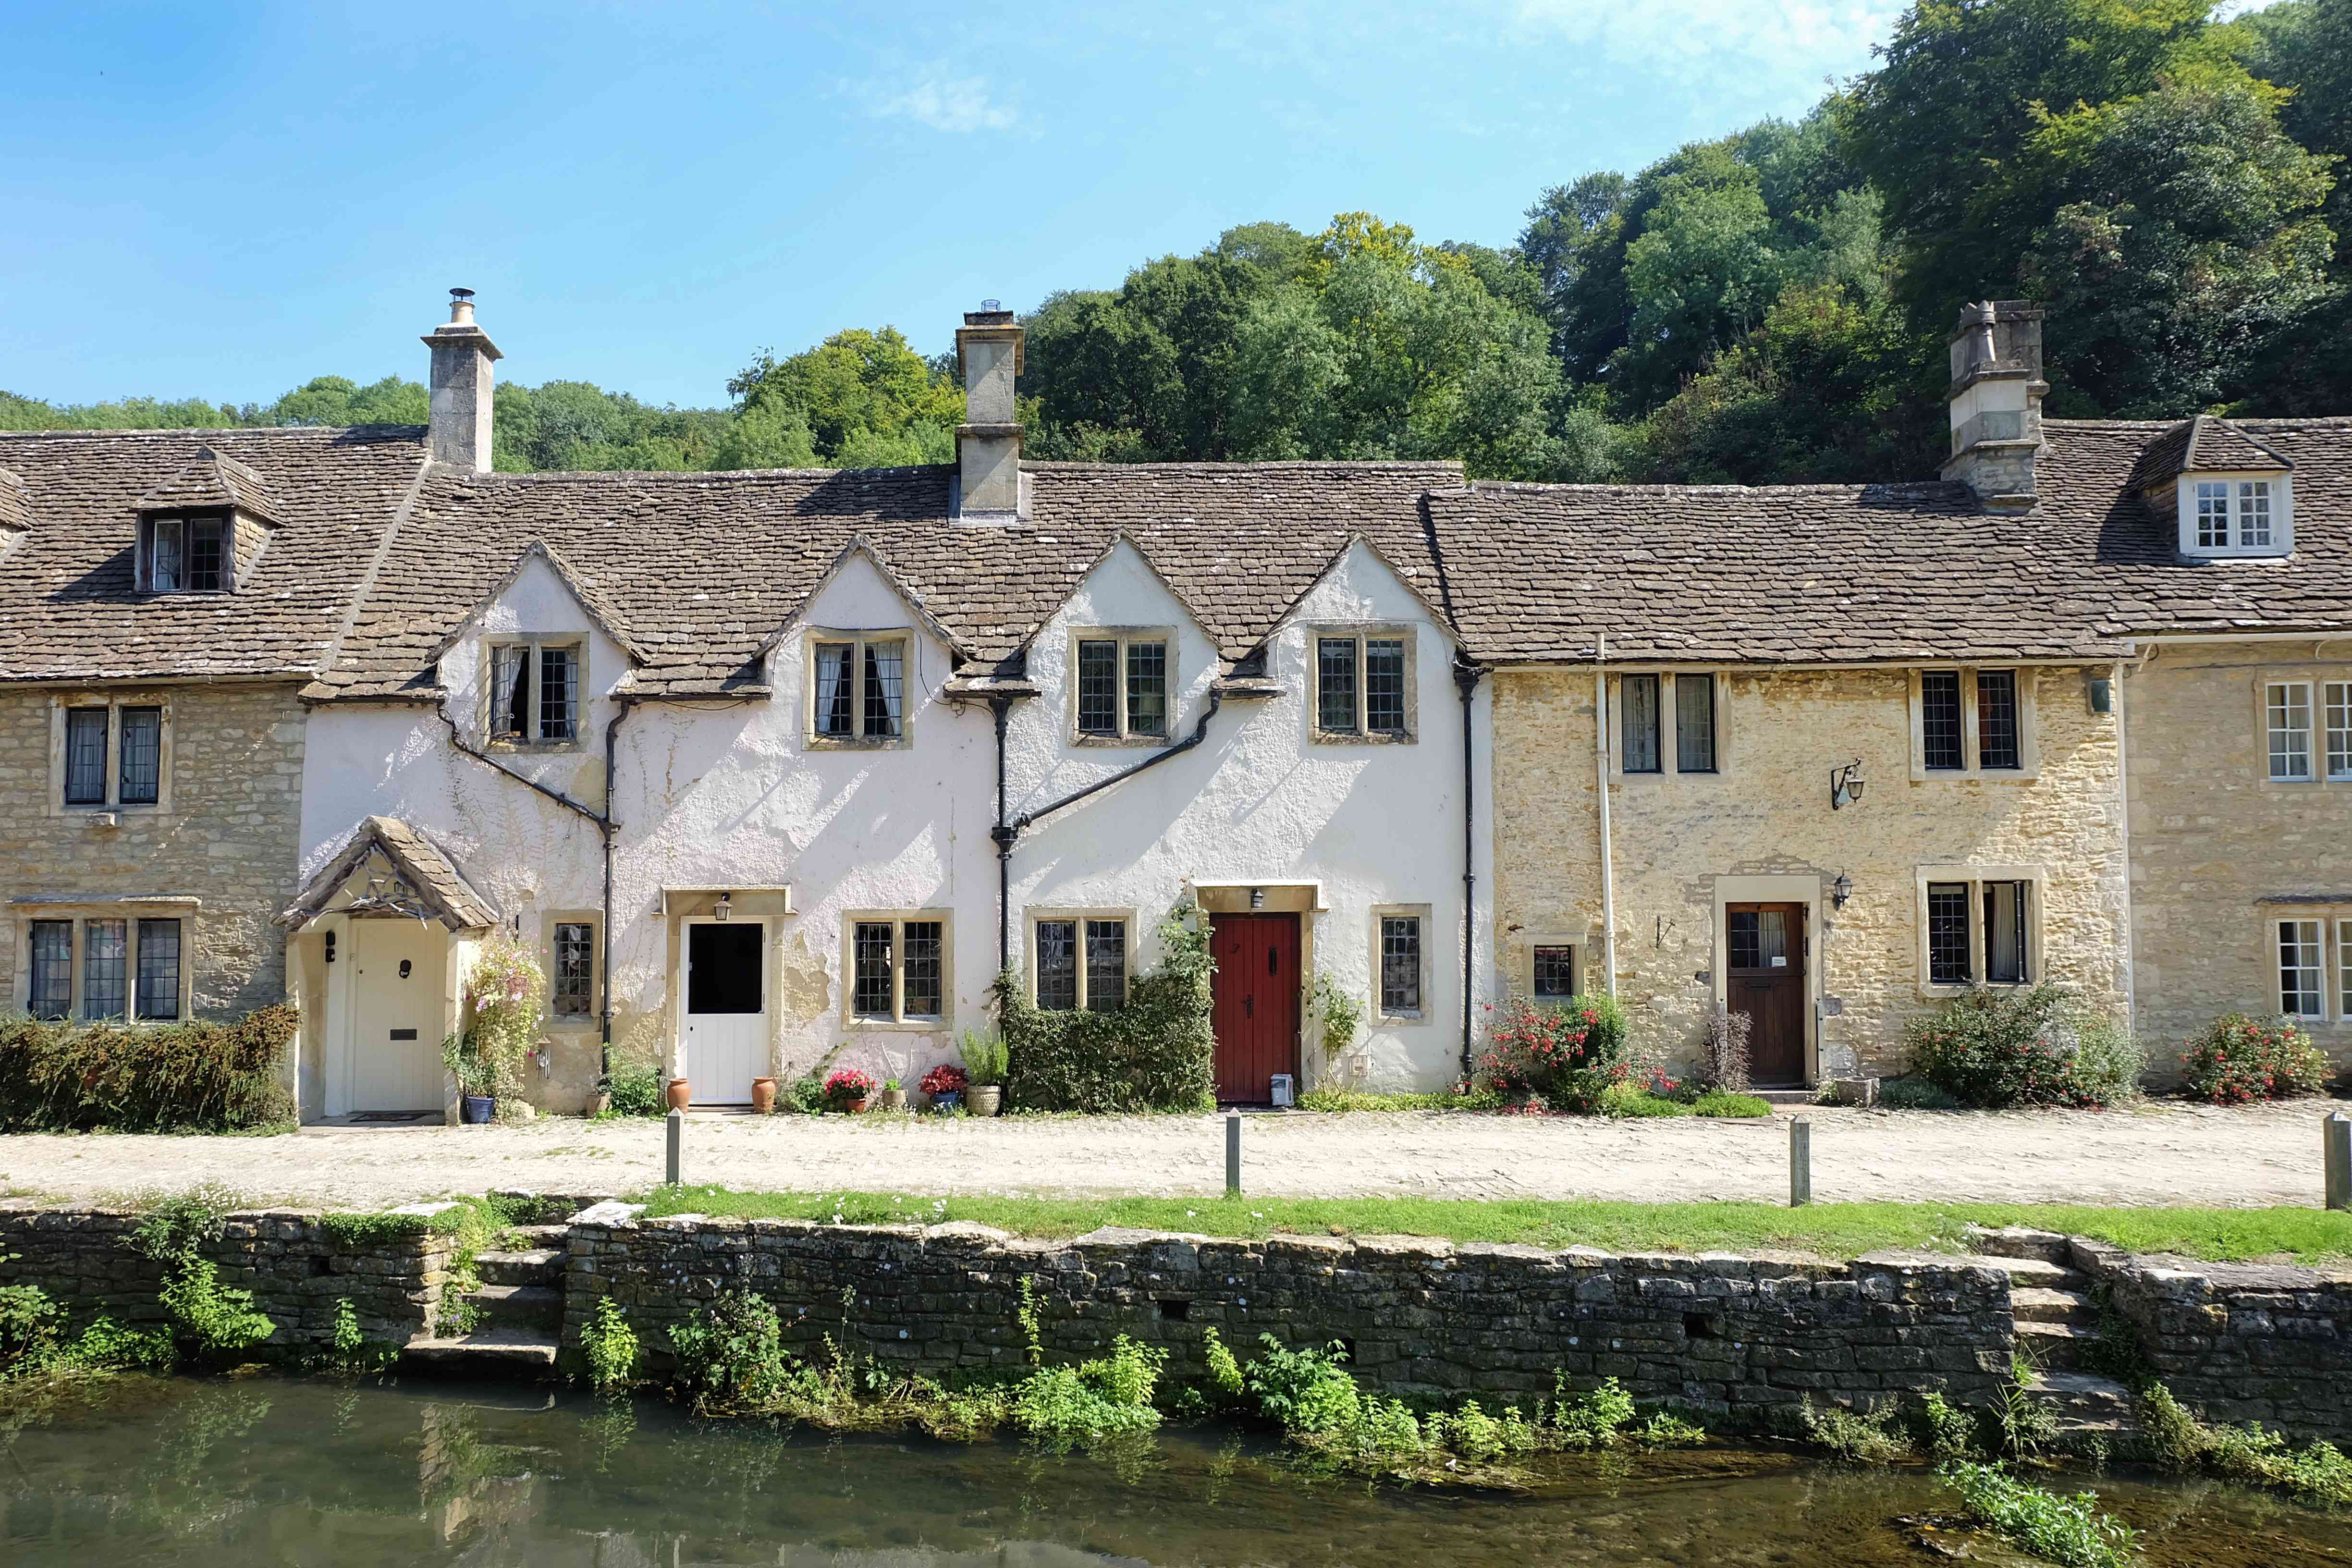 The beautiful houses in Bibury village under the sunlight of the summertime in the UK